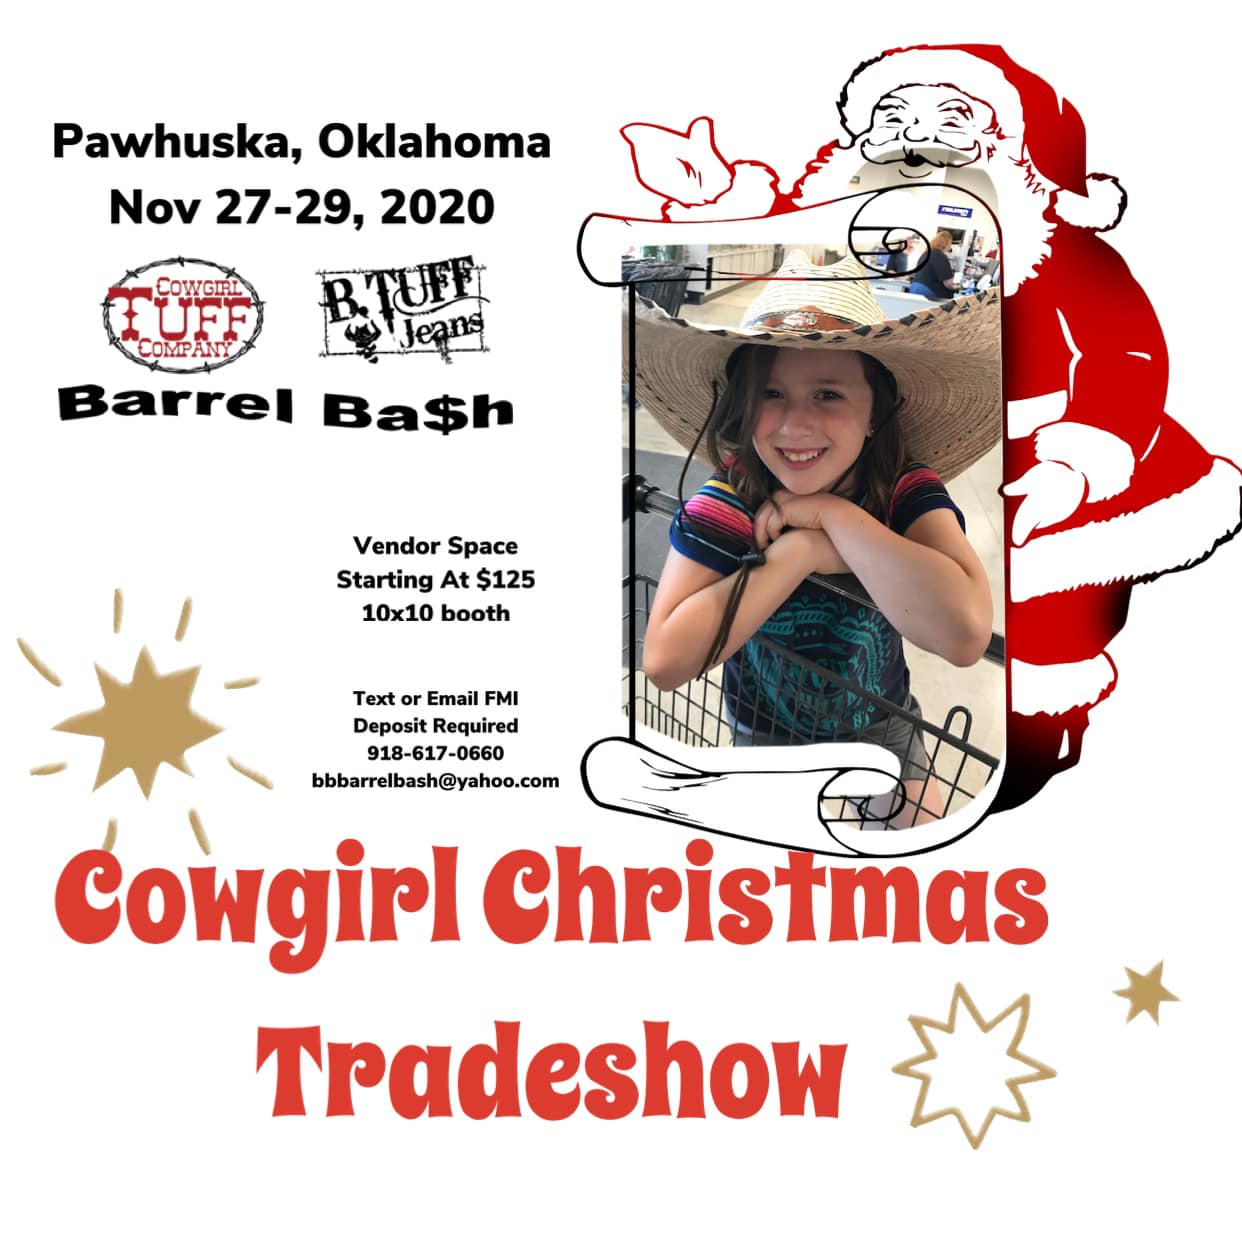 Pawhuska Trade show- Barrel Bash